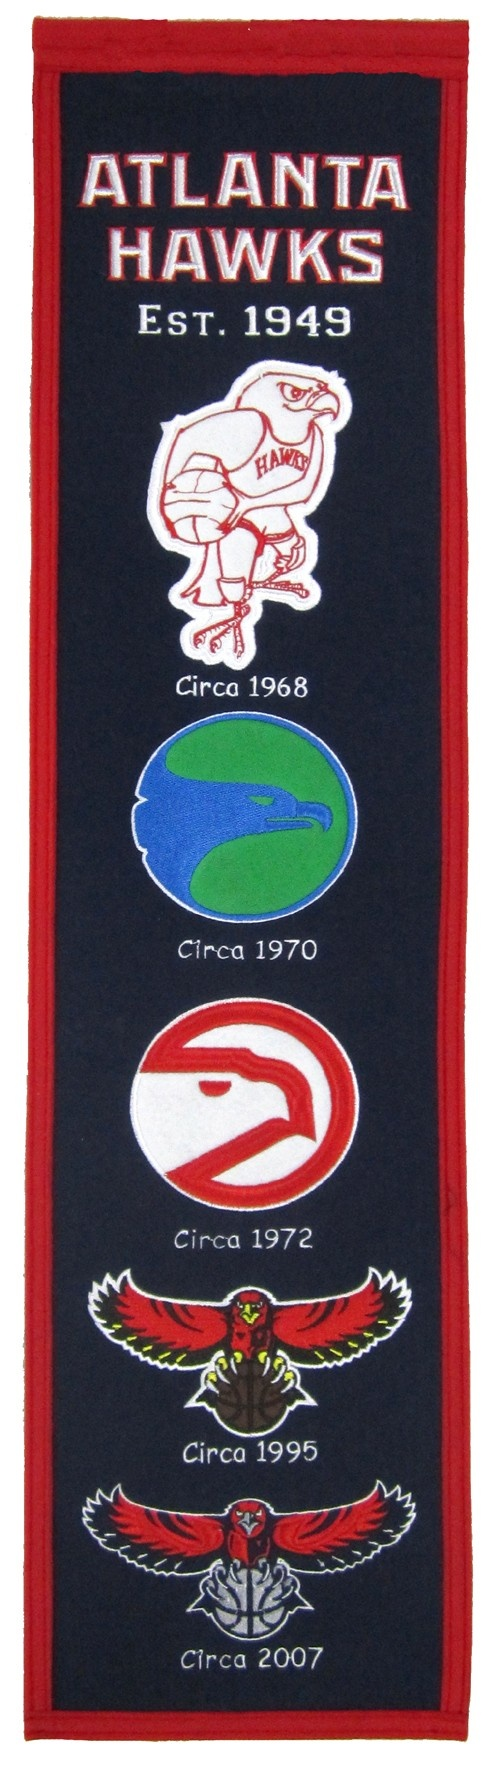 Atlanta Hawks history banner 1970 was my favorite year✖️More Pins Like This One At FOSTERGINGER @ Pinterest✖️